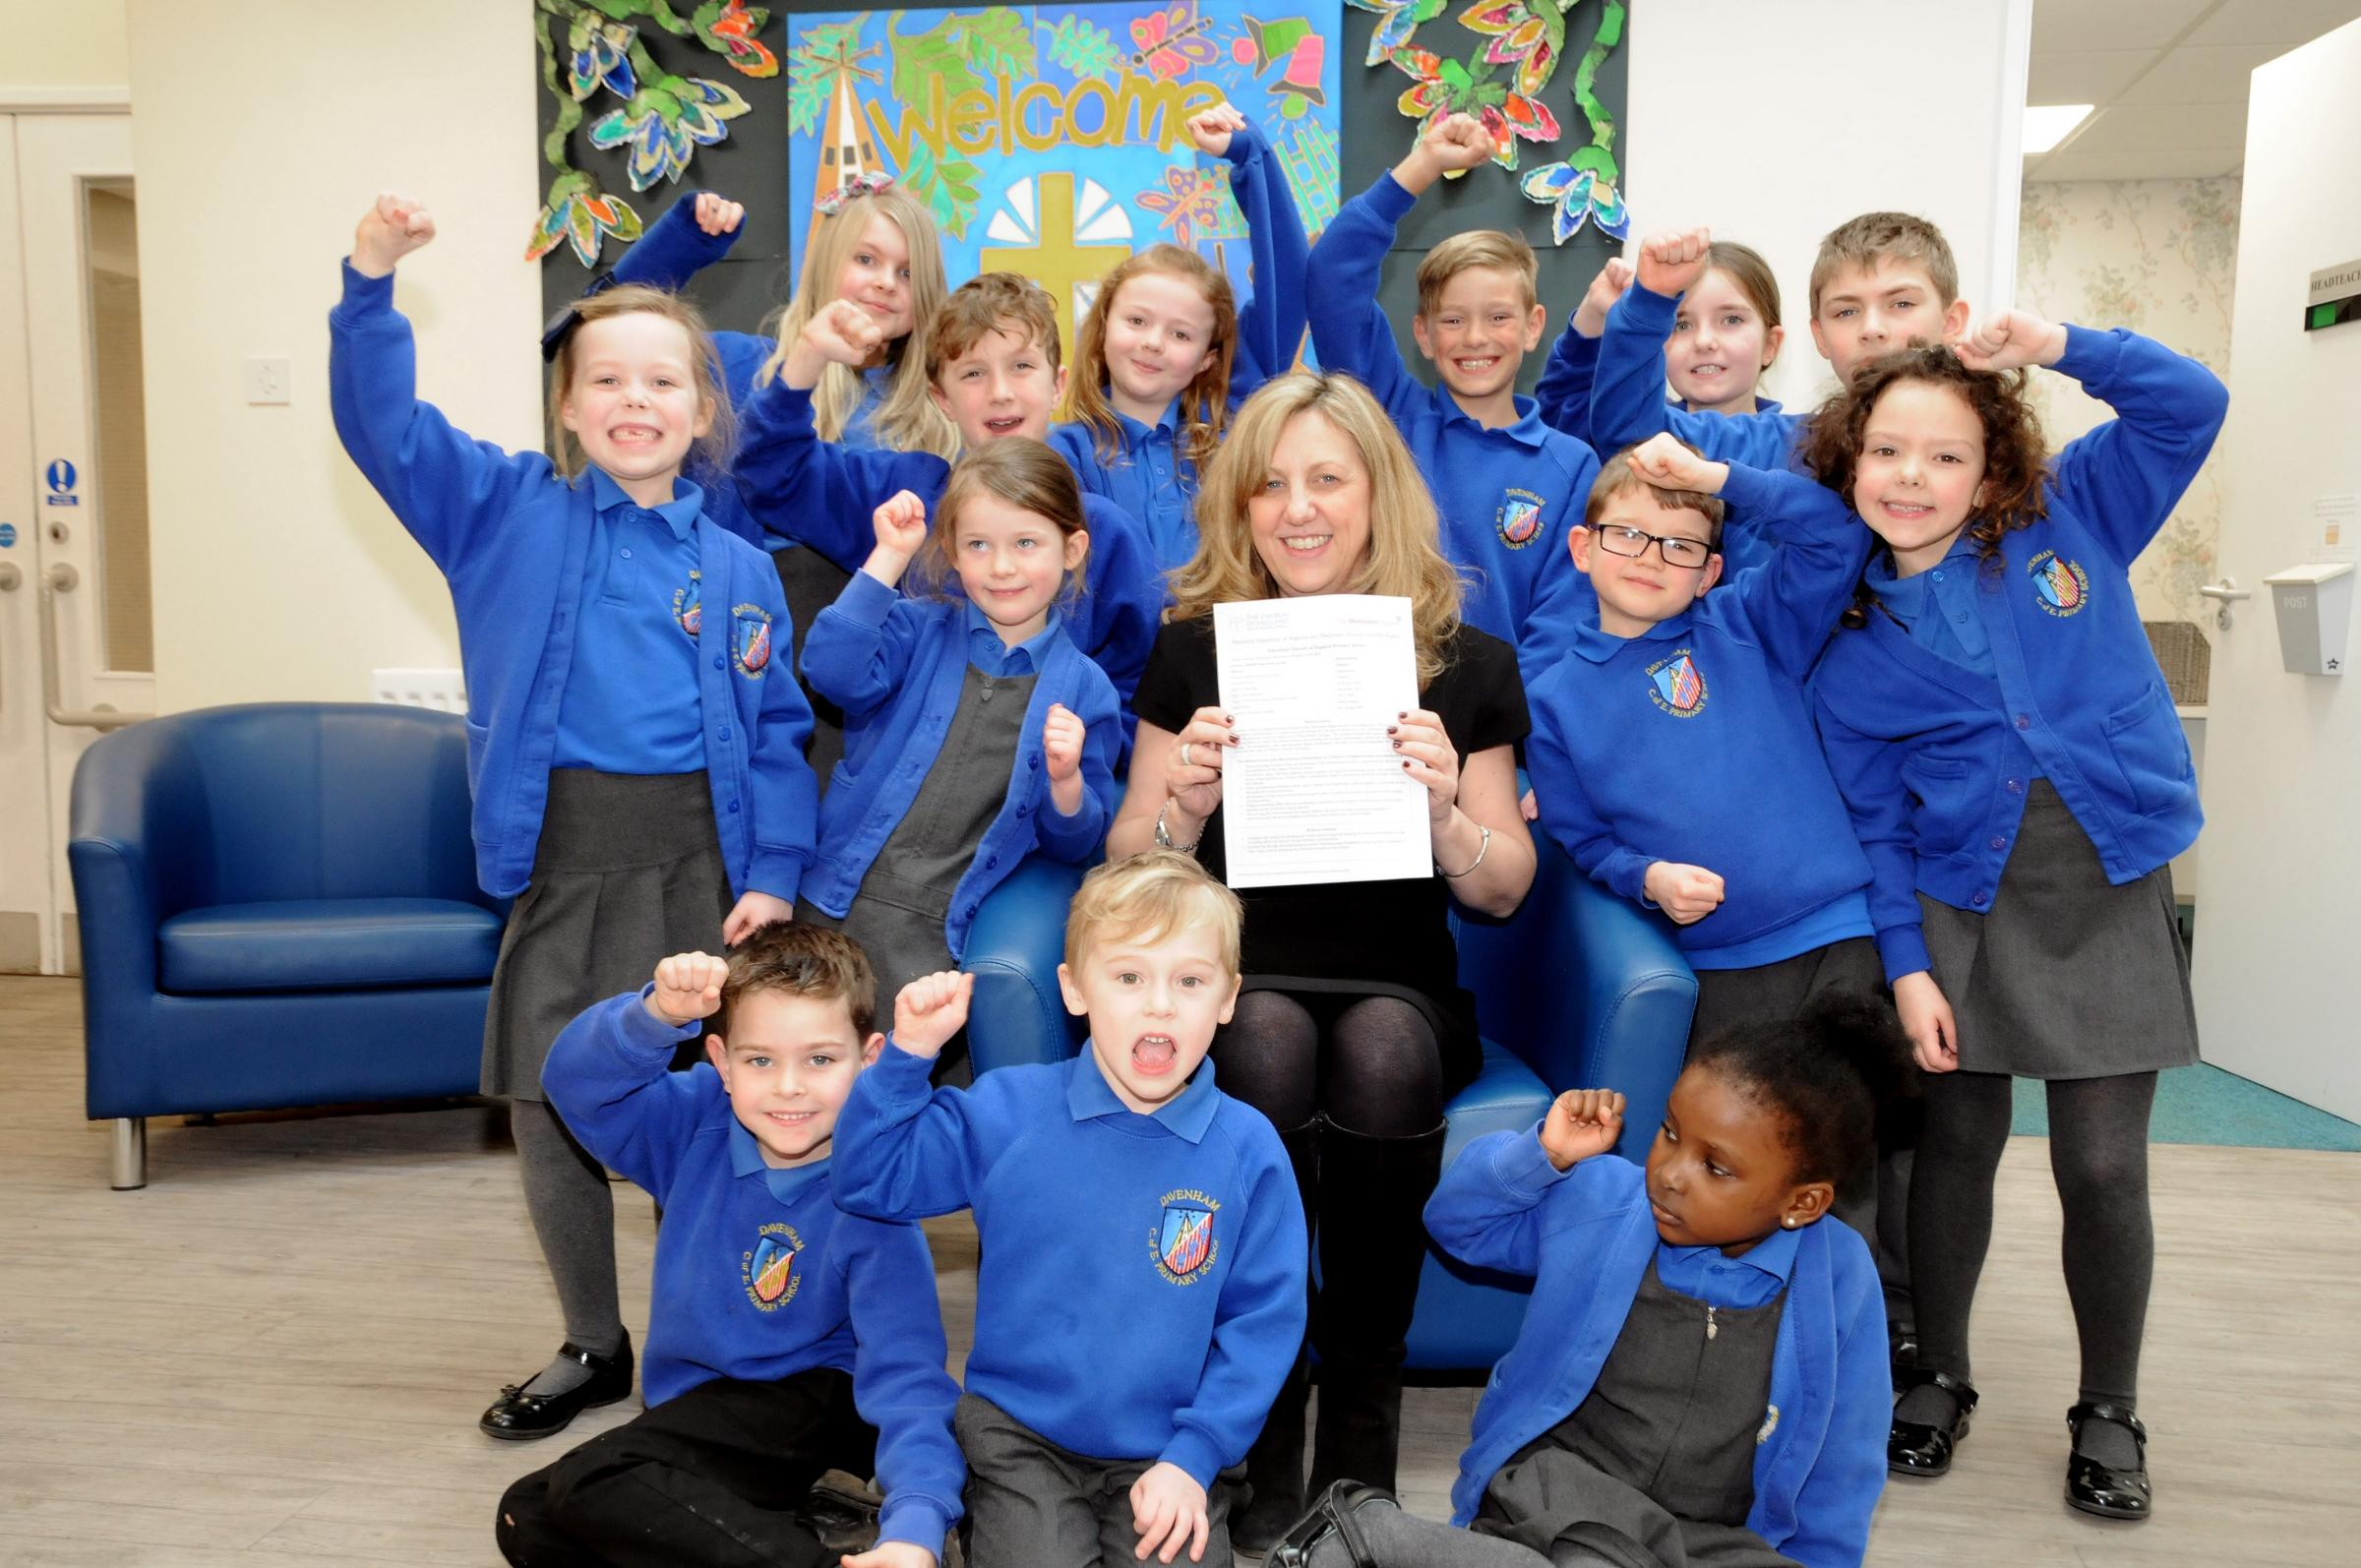 Davenham C of E Primary School Headteacher Joanne Hyslop and pupils after being awarded outstanding grades in recent school inspection